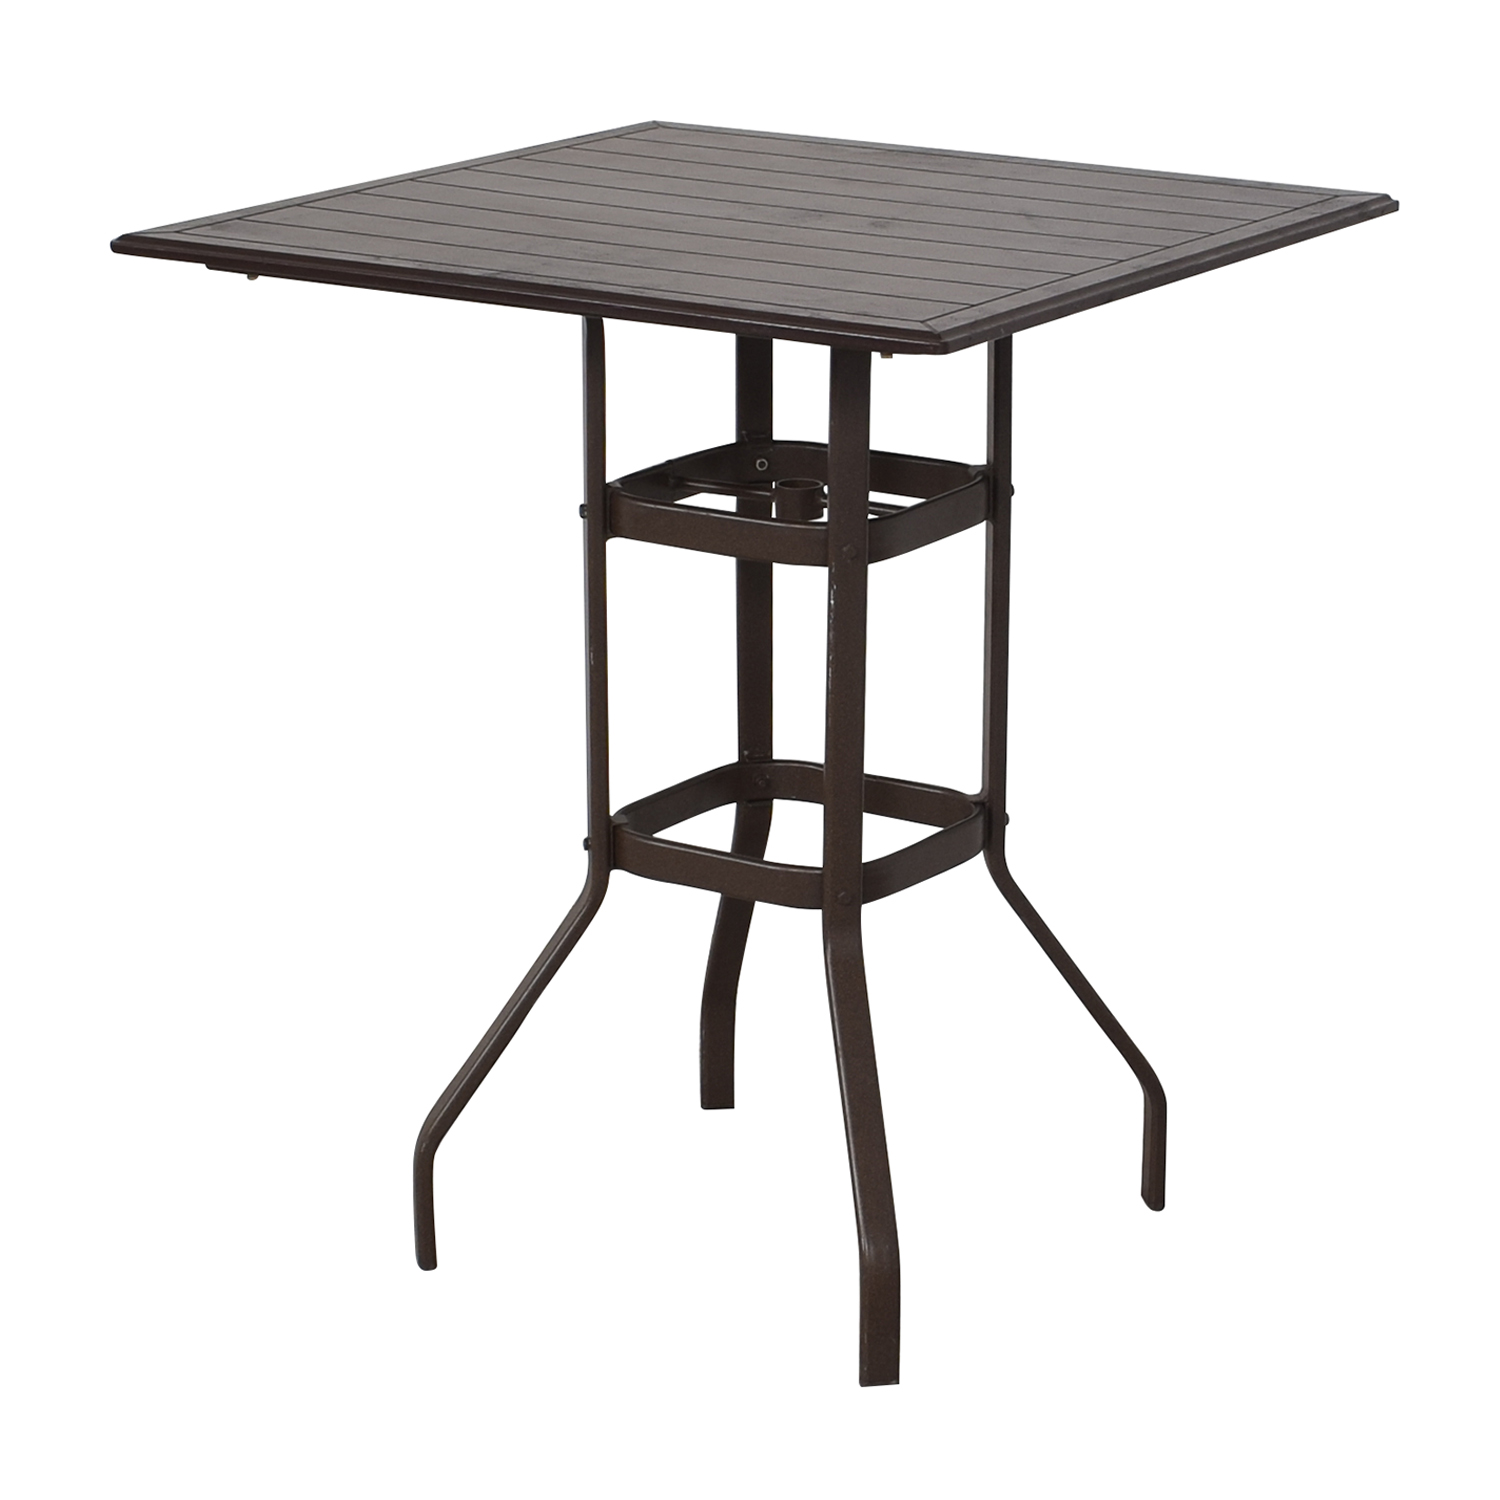 buy Windward Design Group Dining Table Windward Design Group Dinner Tables